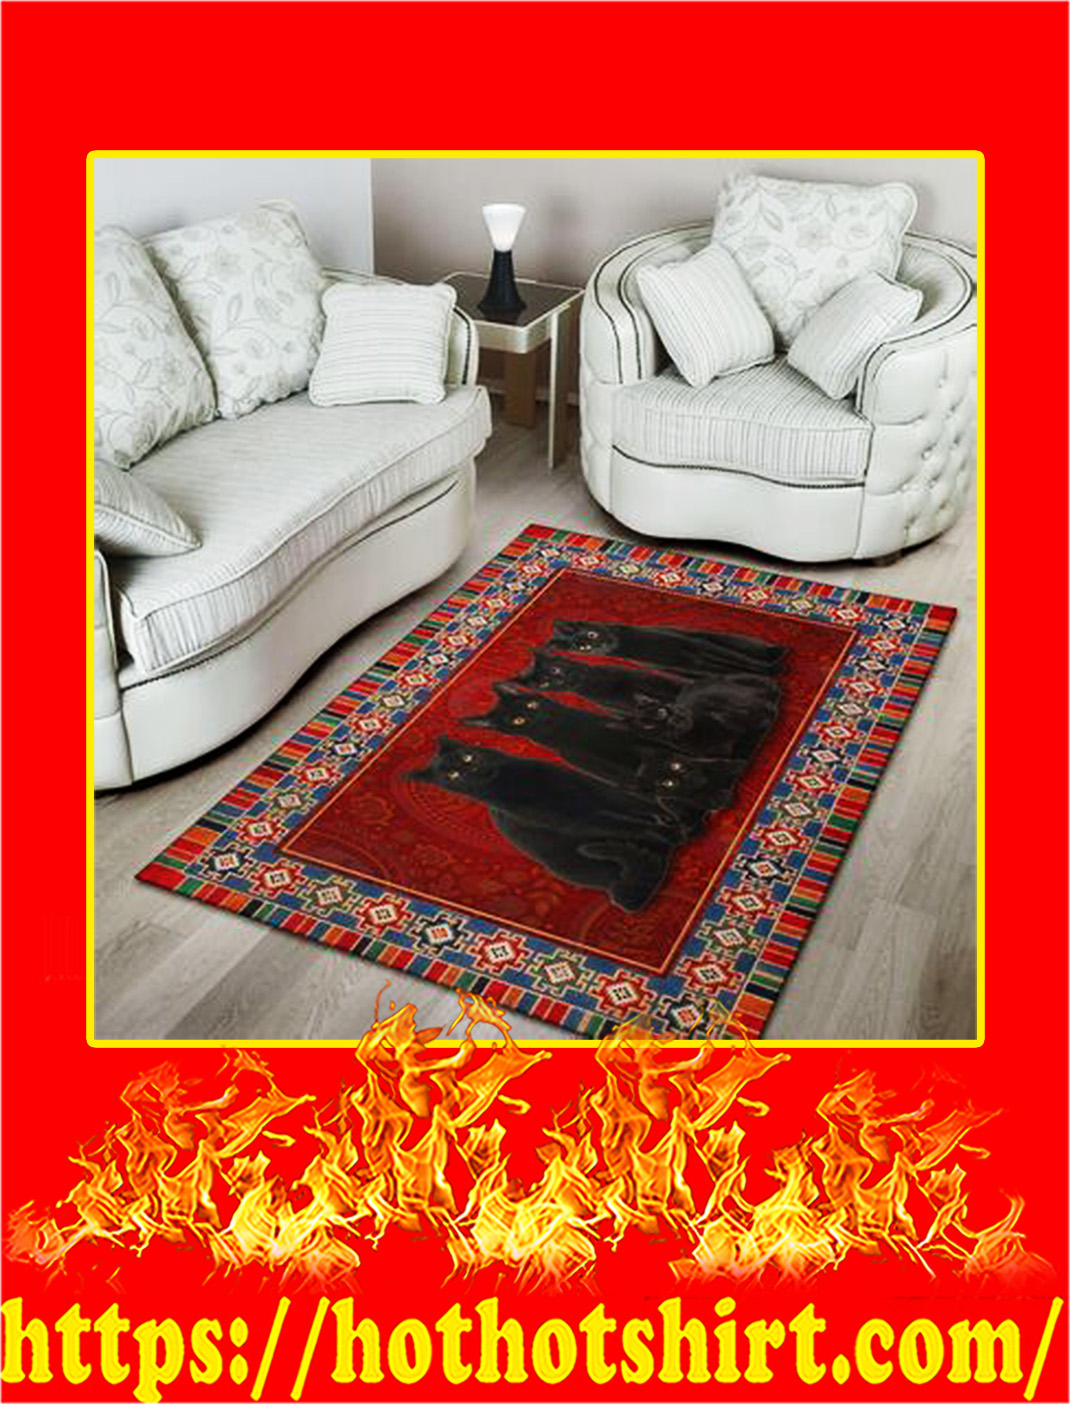 The Imperial Black Cat Rug- large